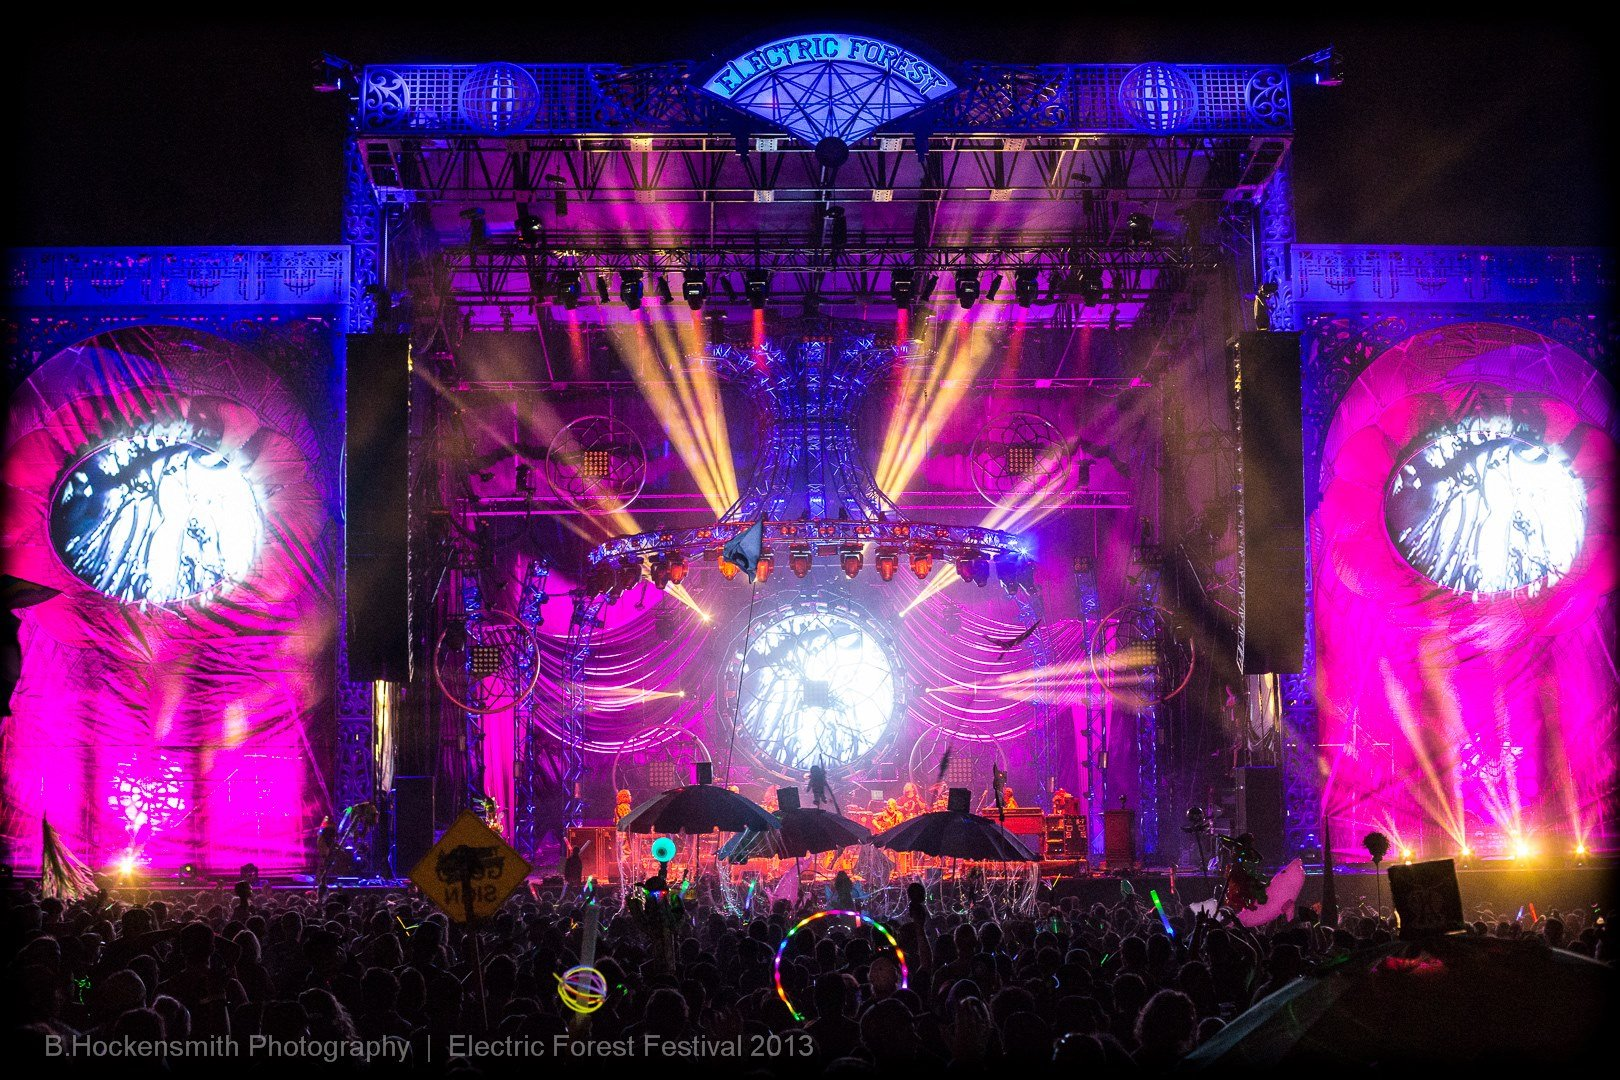 Electric Forest 2013. Used with permission from B. Hockensmith Photography